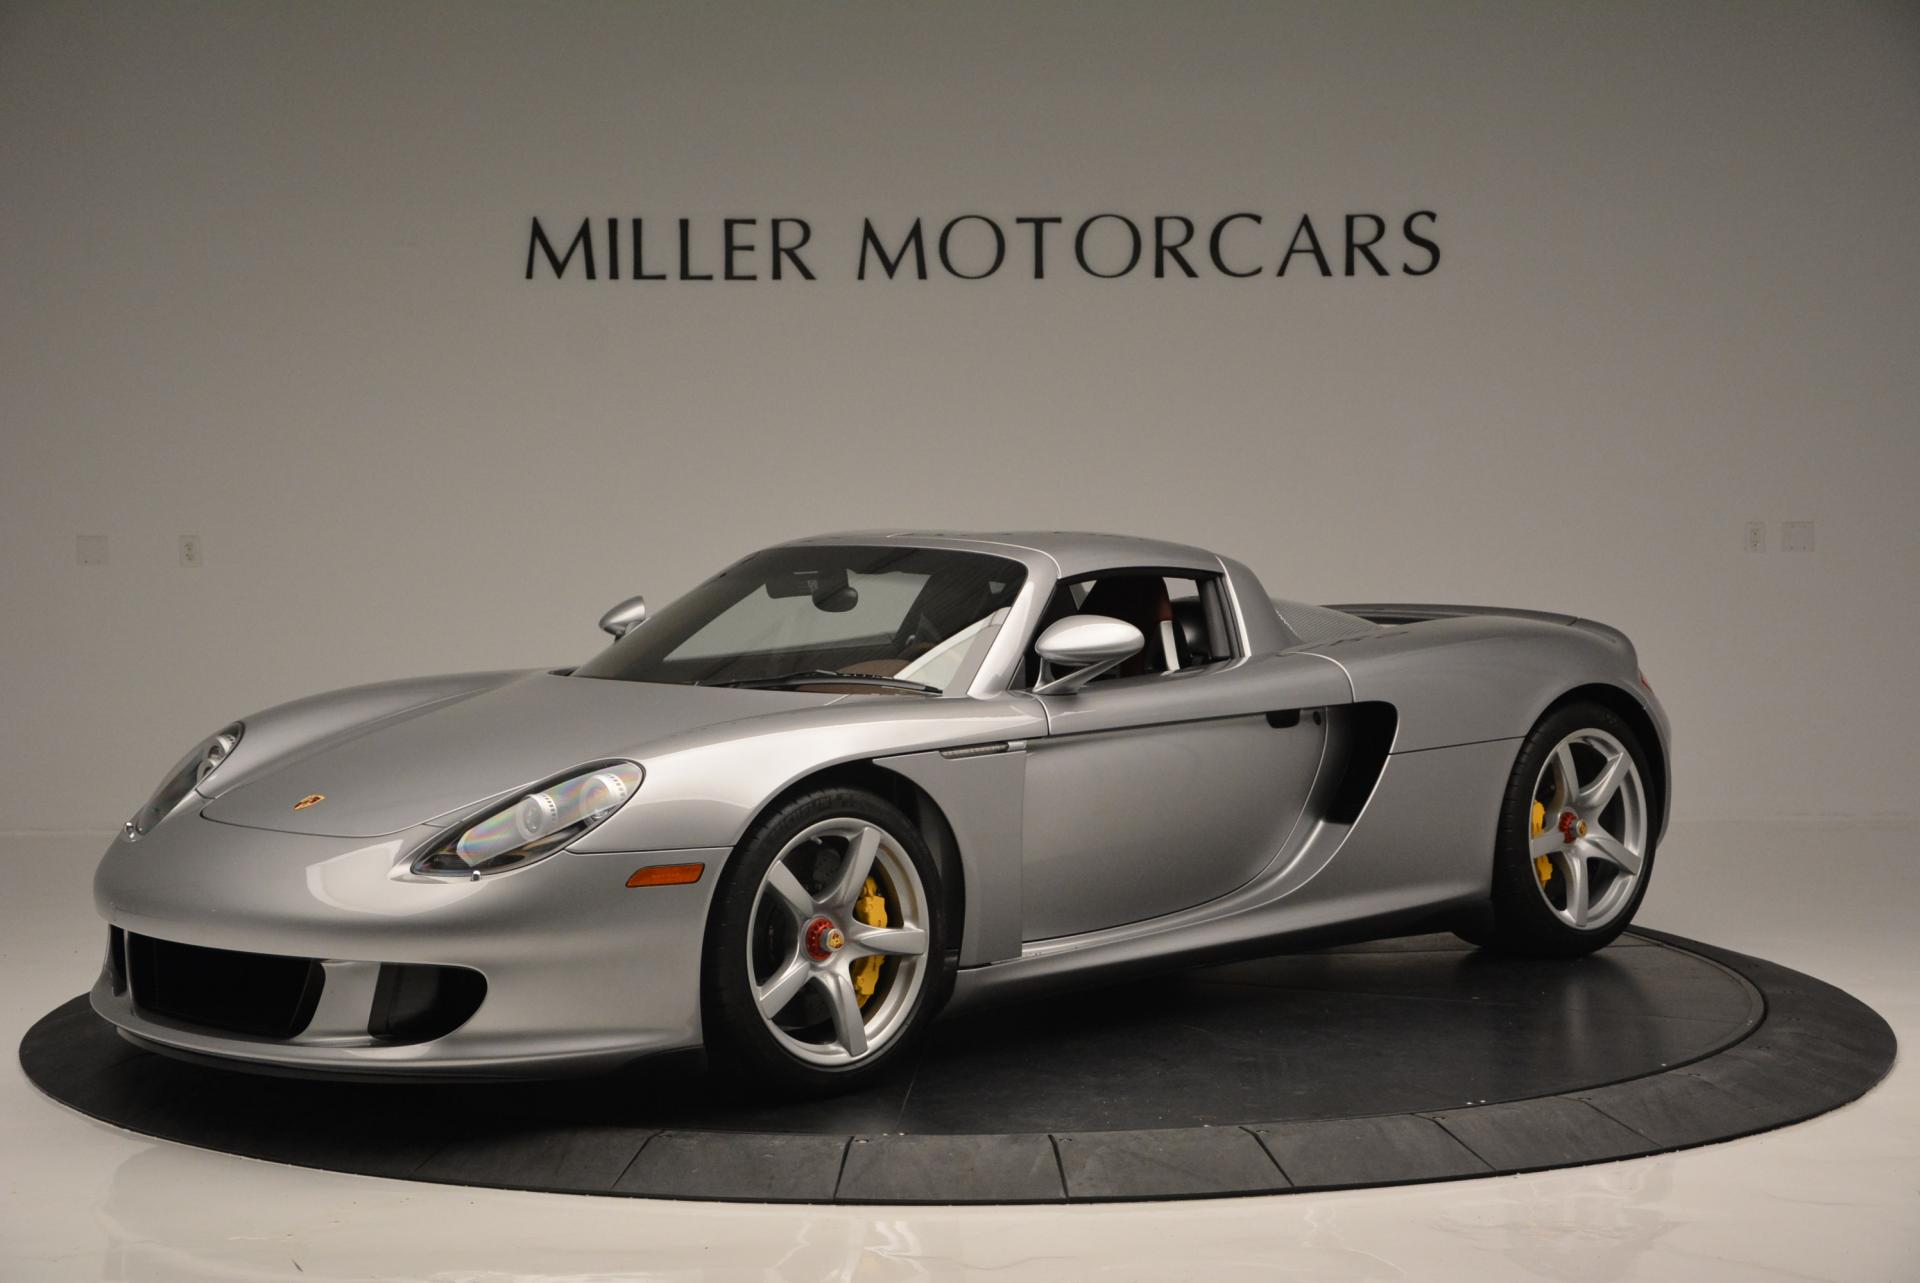 used 2005 porsche carrera gt greenwich ct. Black Bedroom Furniture Sets. Home Design Ideas